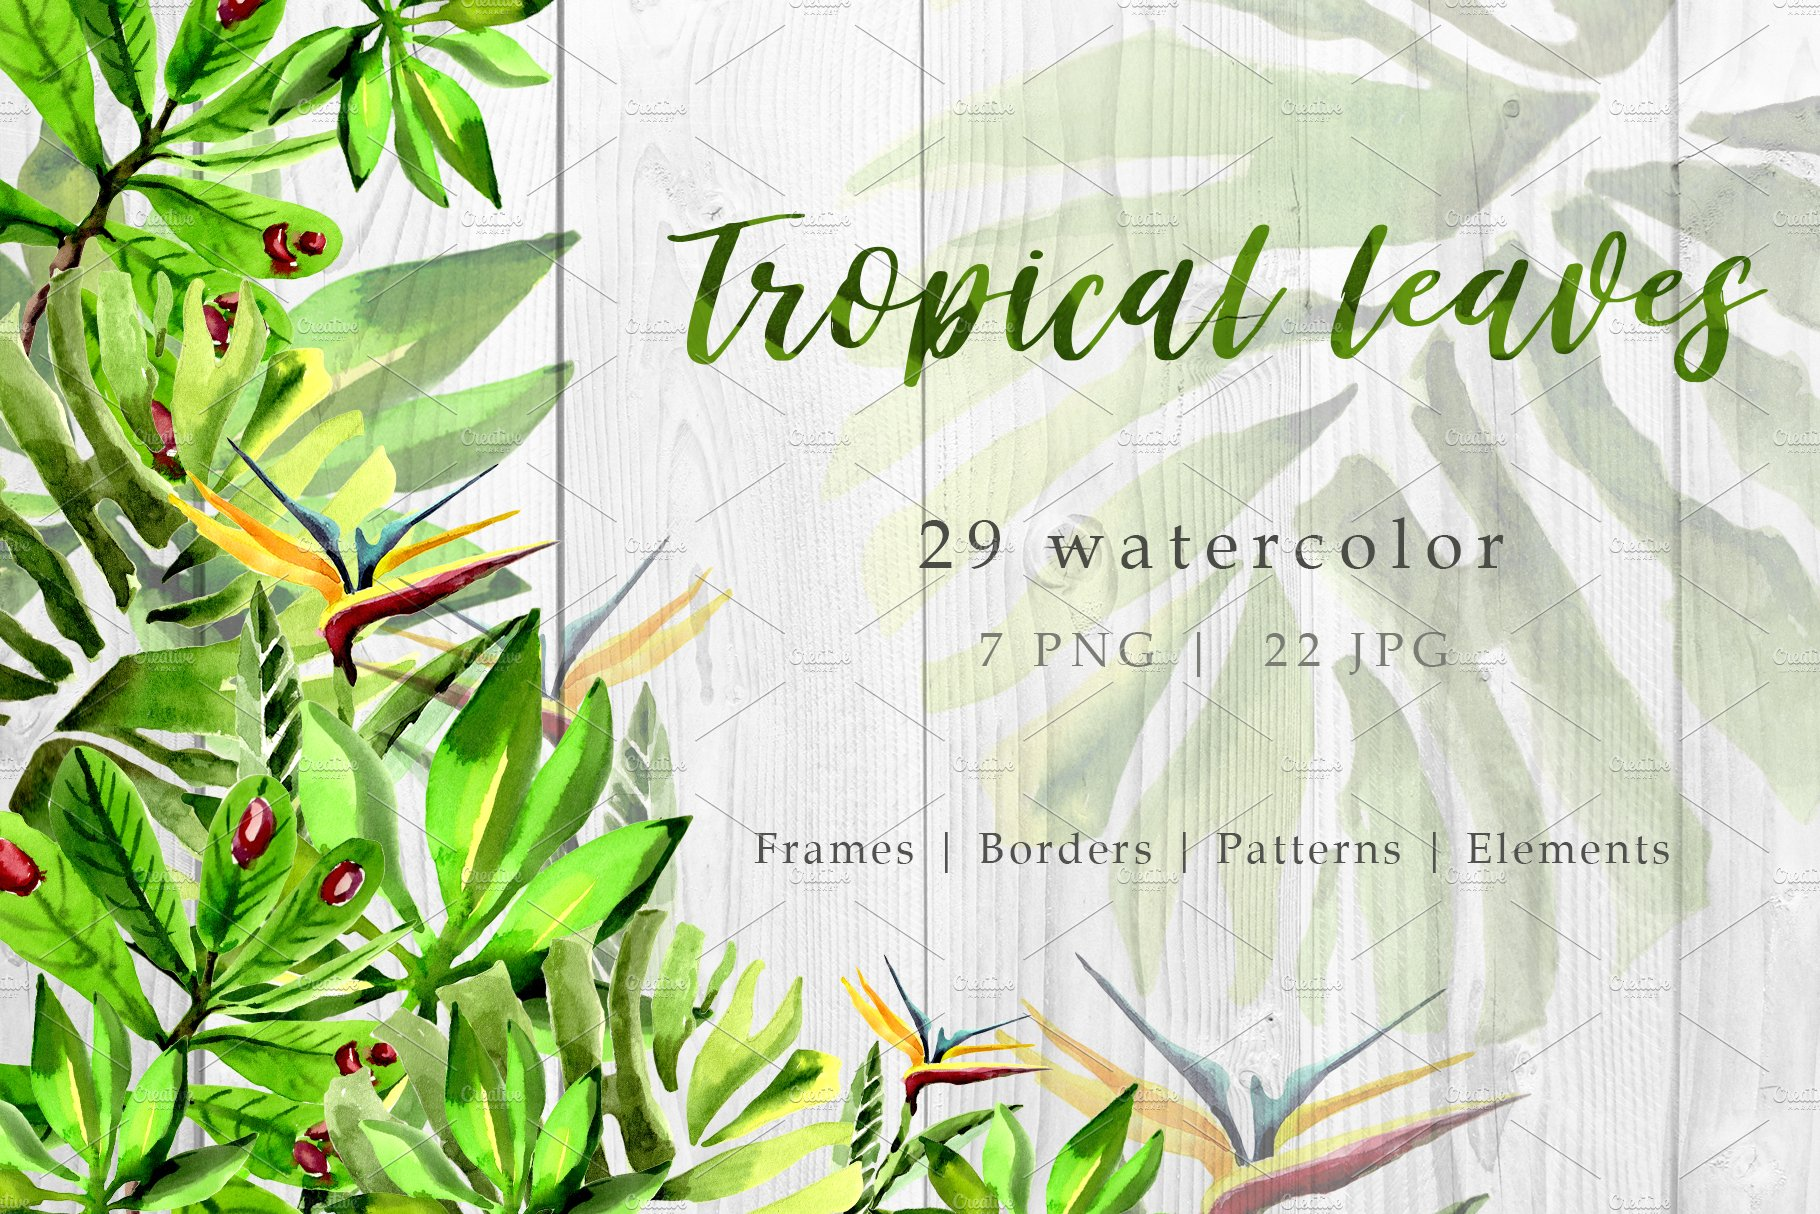 Tropical Leaves Png Watercolor Set Pre Designed Photoshop Graphics Creative Market Blue, red, and pink swiss cheese leaves print textile. tropical leaves png watercolor set